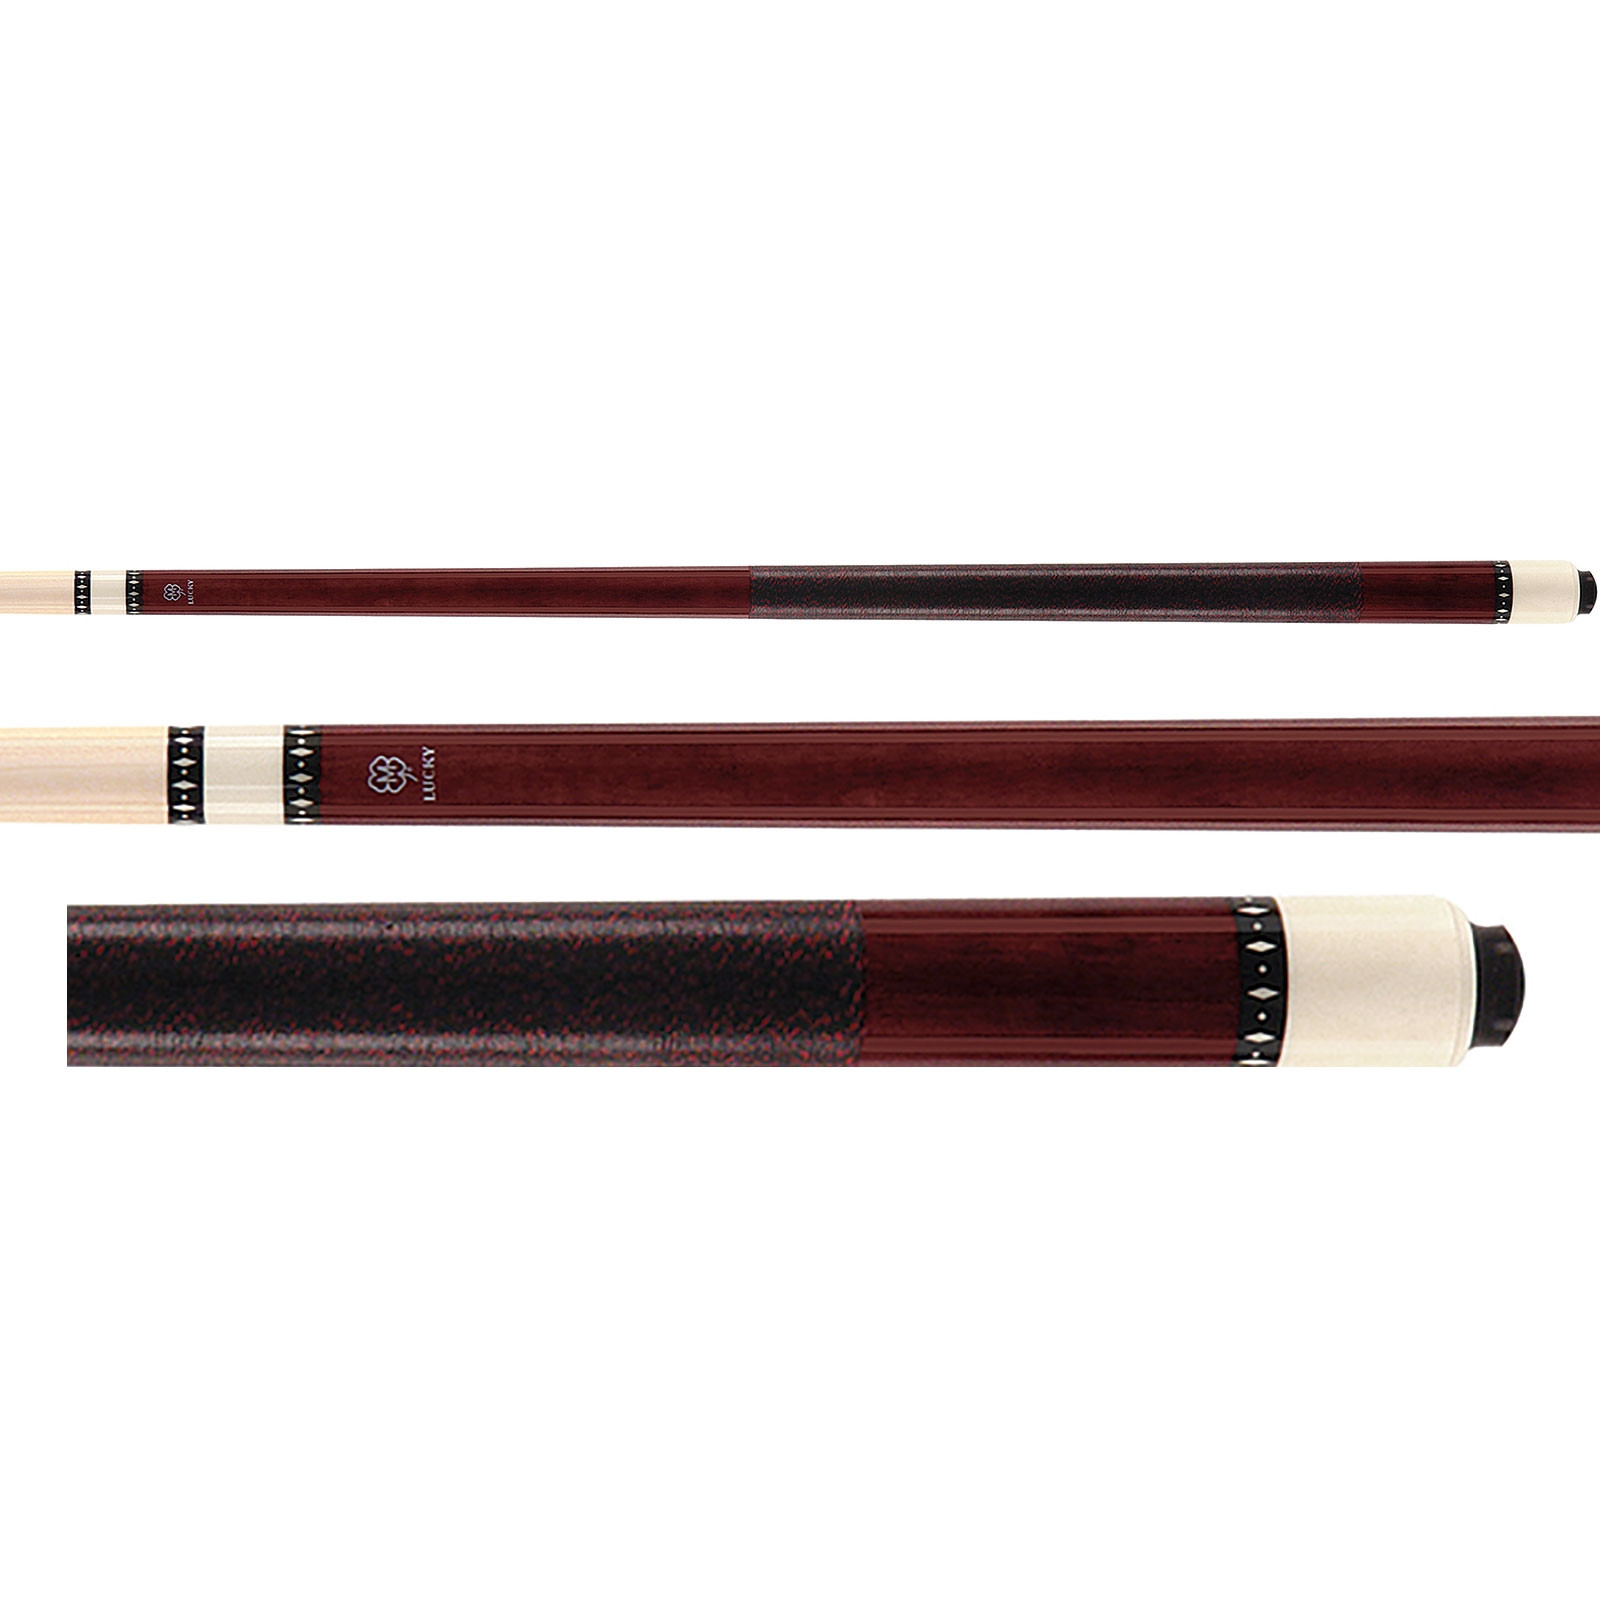 McDermott Lucky Pool Cue, L6, Red